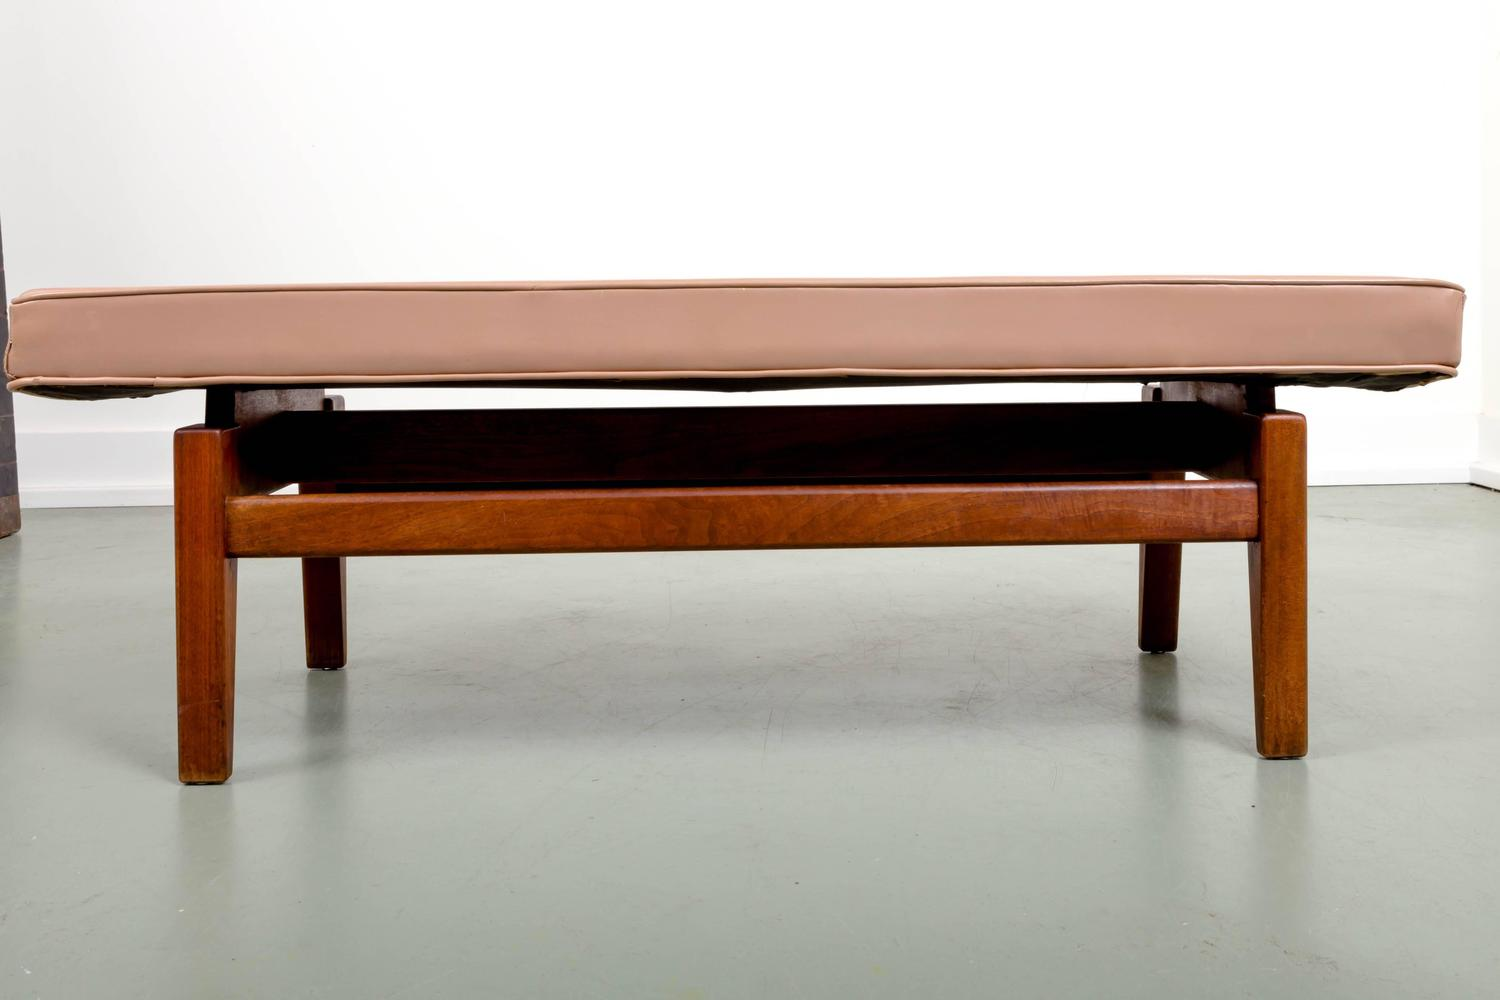 14 beautiful floating bench architecture plans 69023 for Floating bench plans